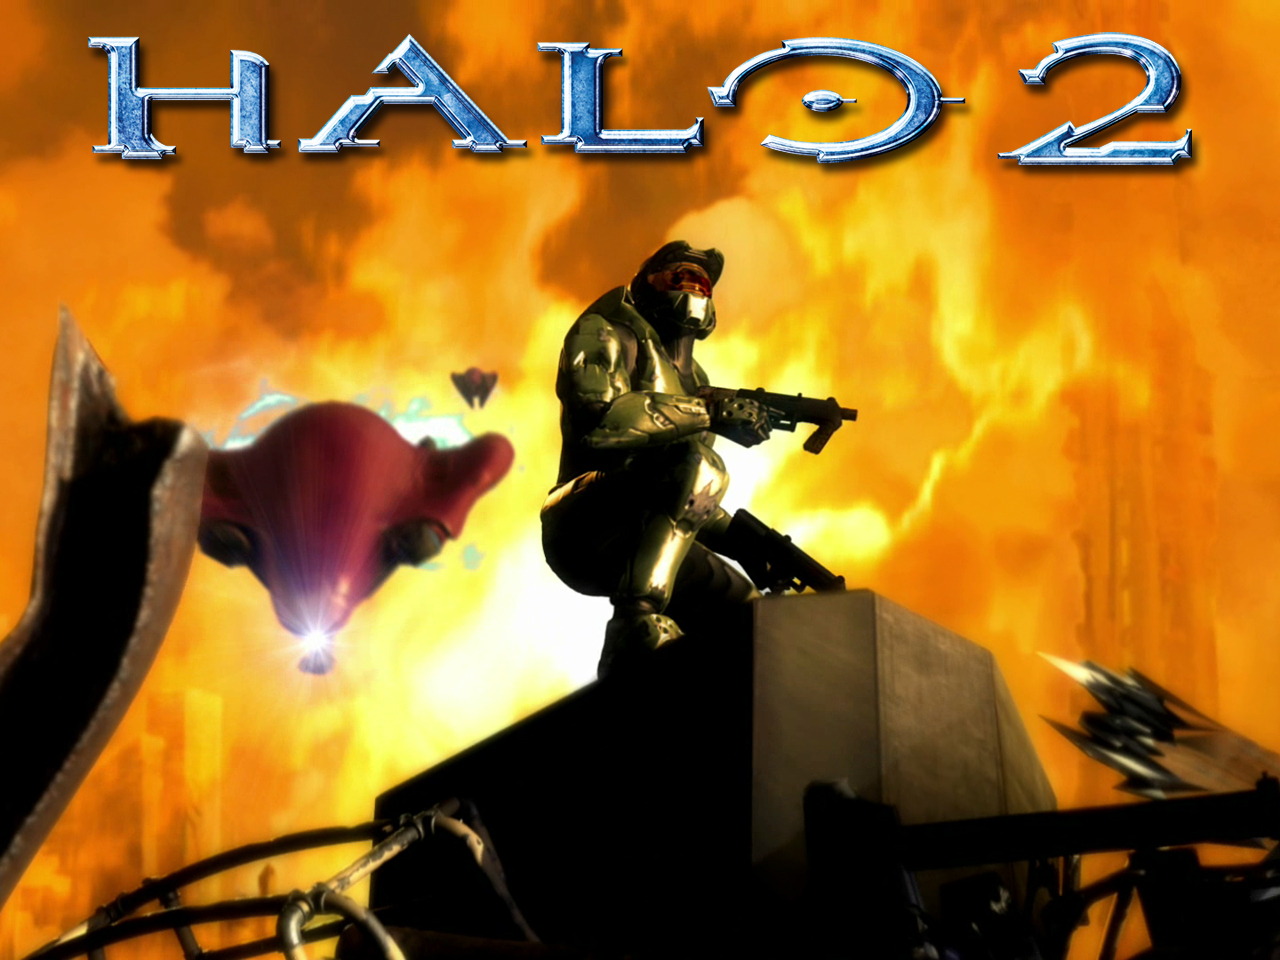 Halo 2 Wallpaper for Iphone